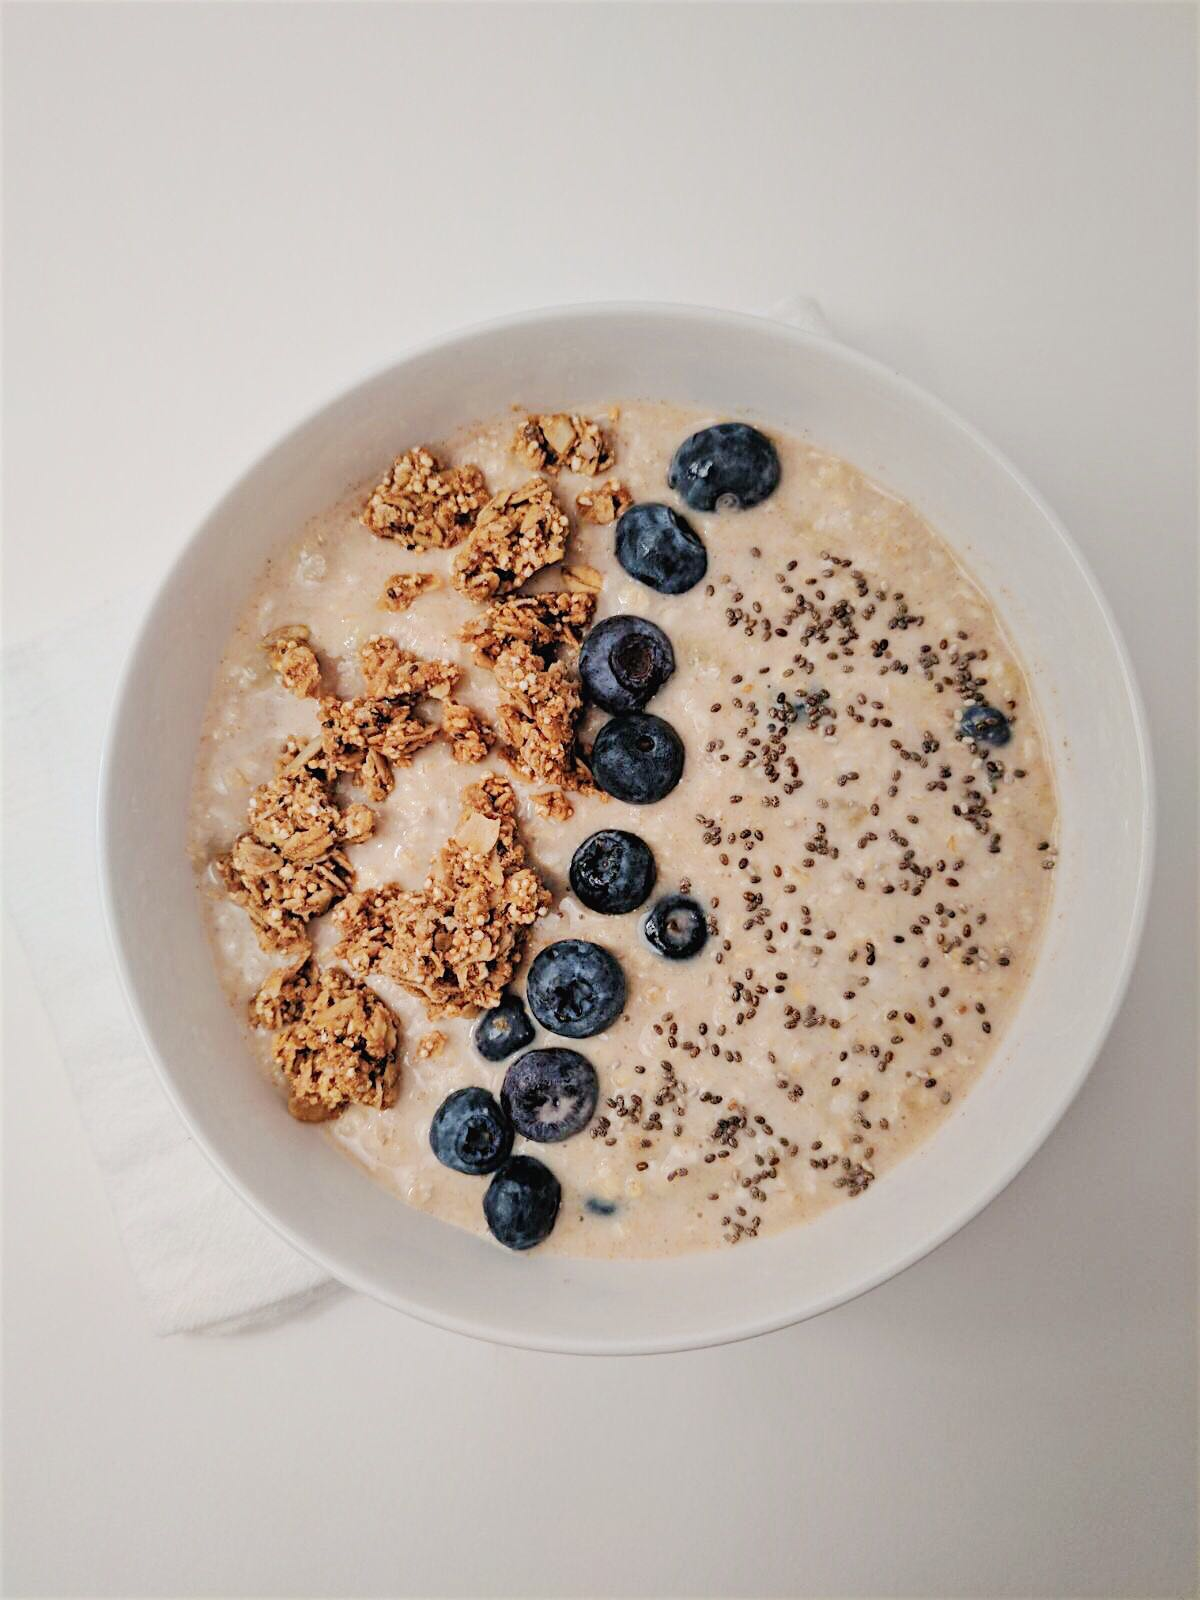 Creamy Blueberry Overnight Oats overhead shot with white background